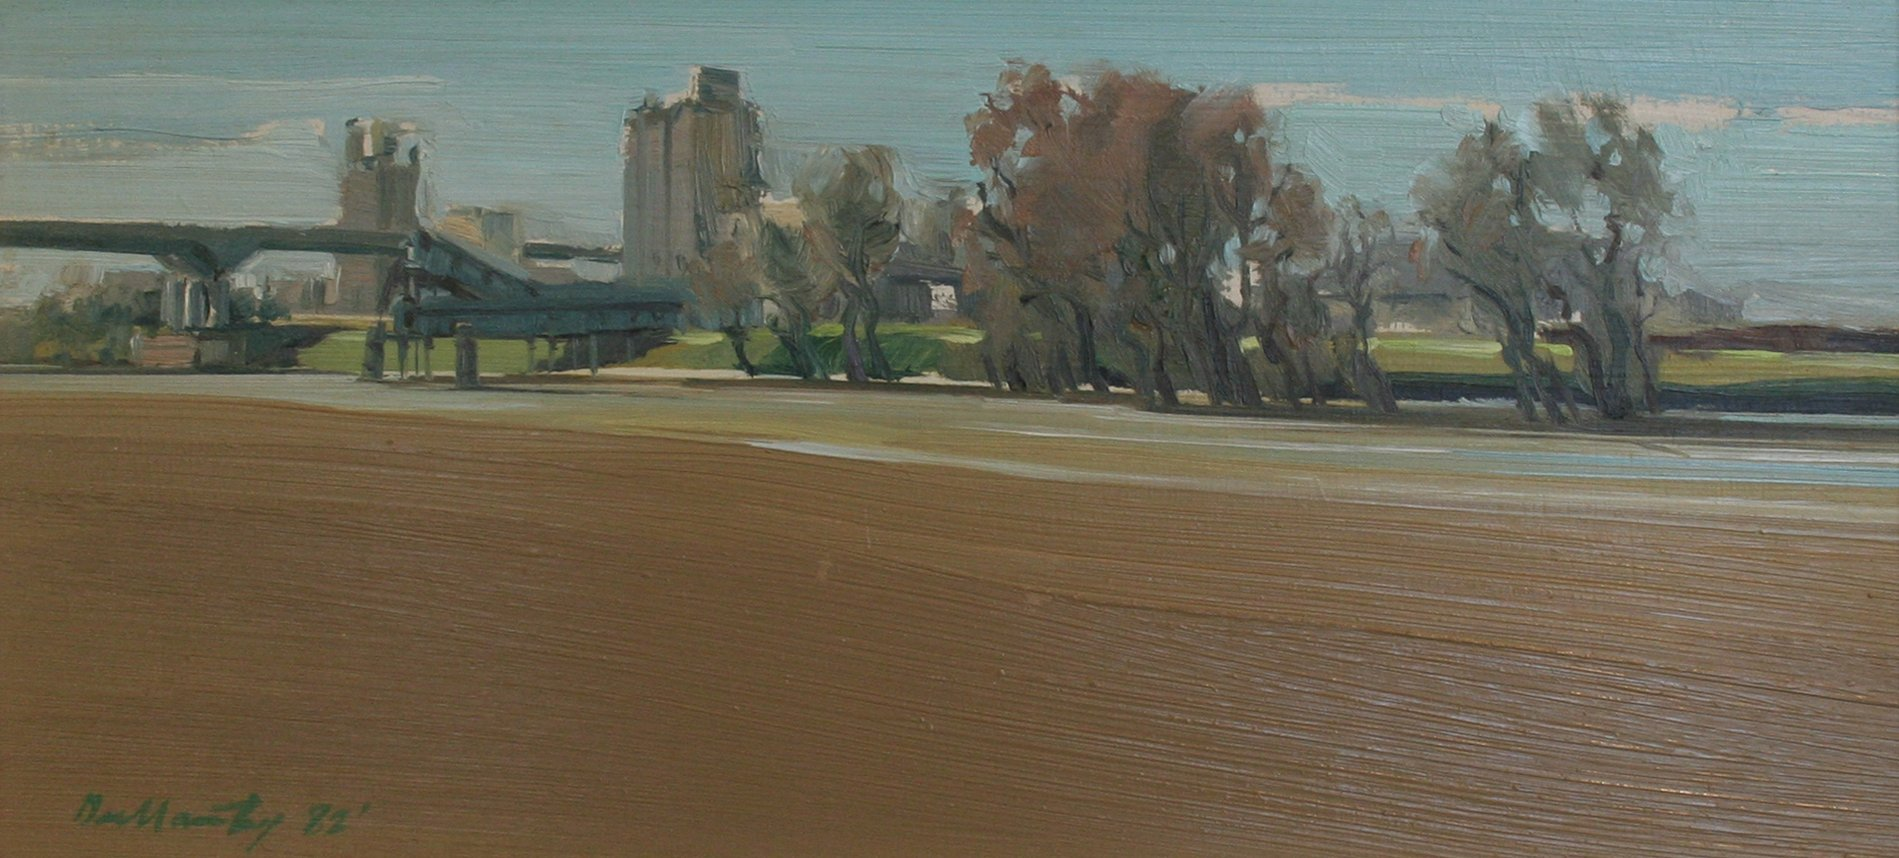 Patrick Dullanty Grain Silos On The Sacramento River